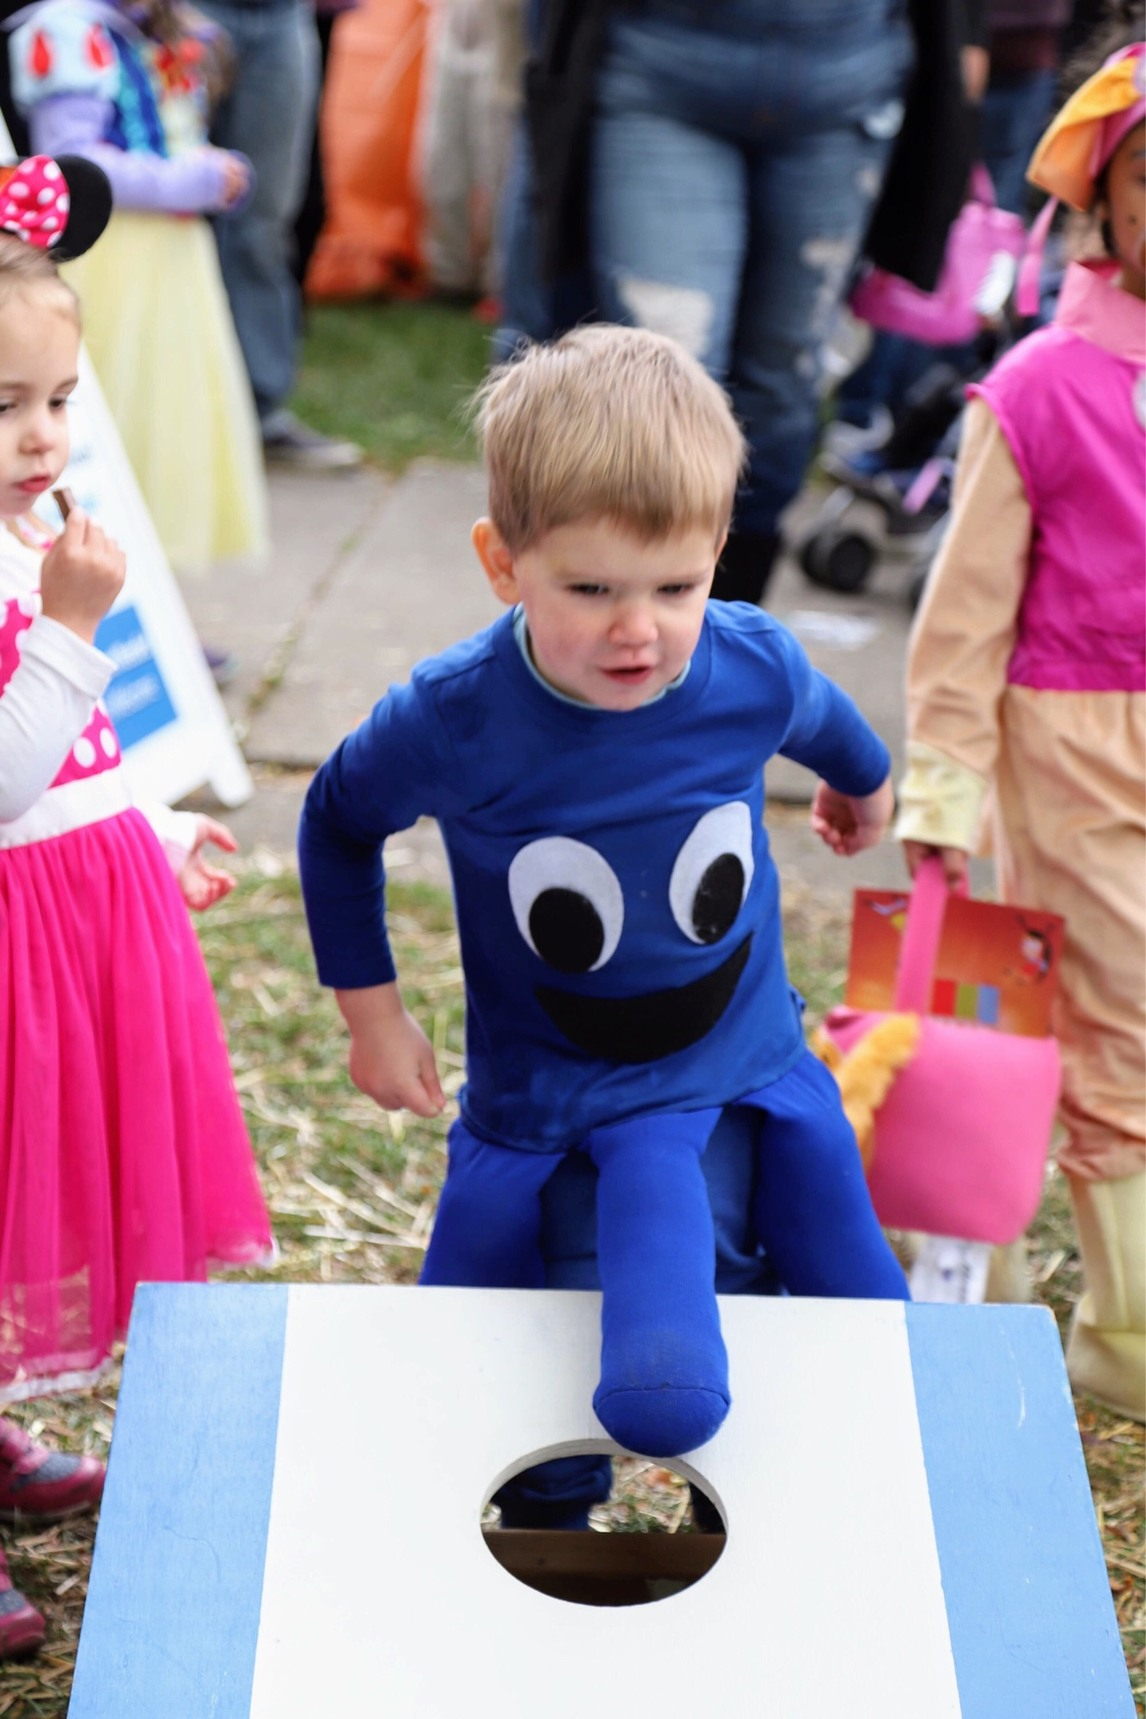 When your little brothers Octopus costume has a glitch. - meme